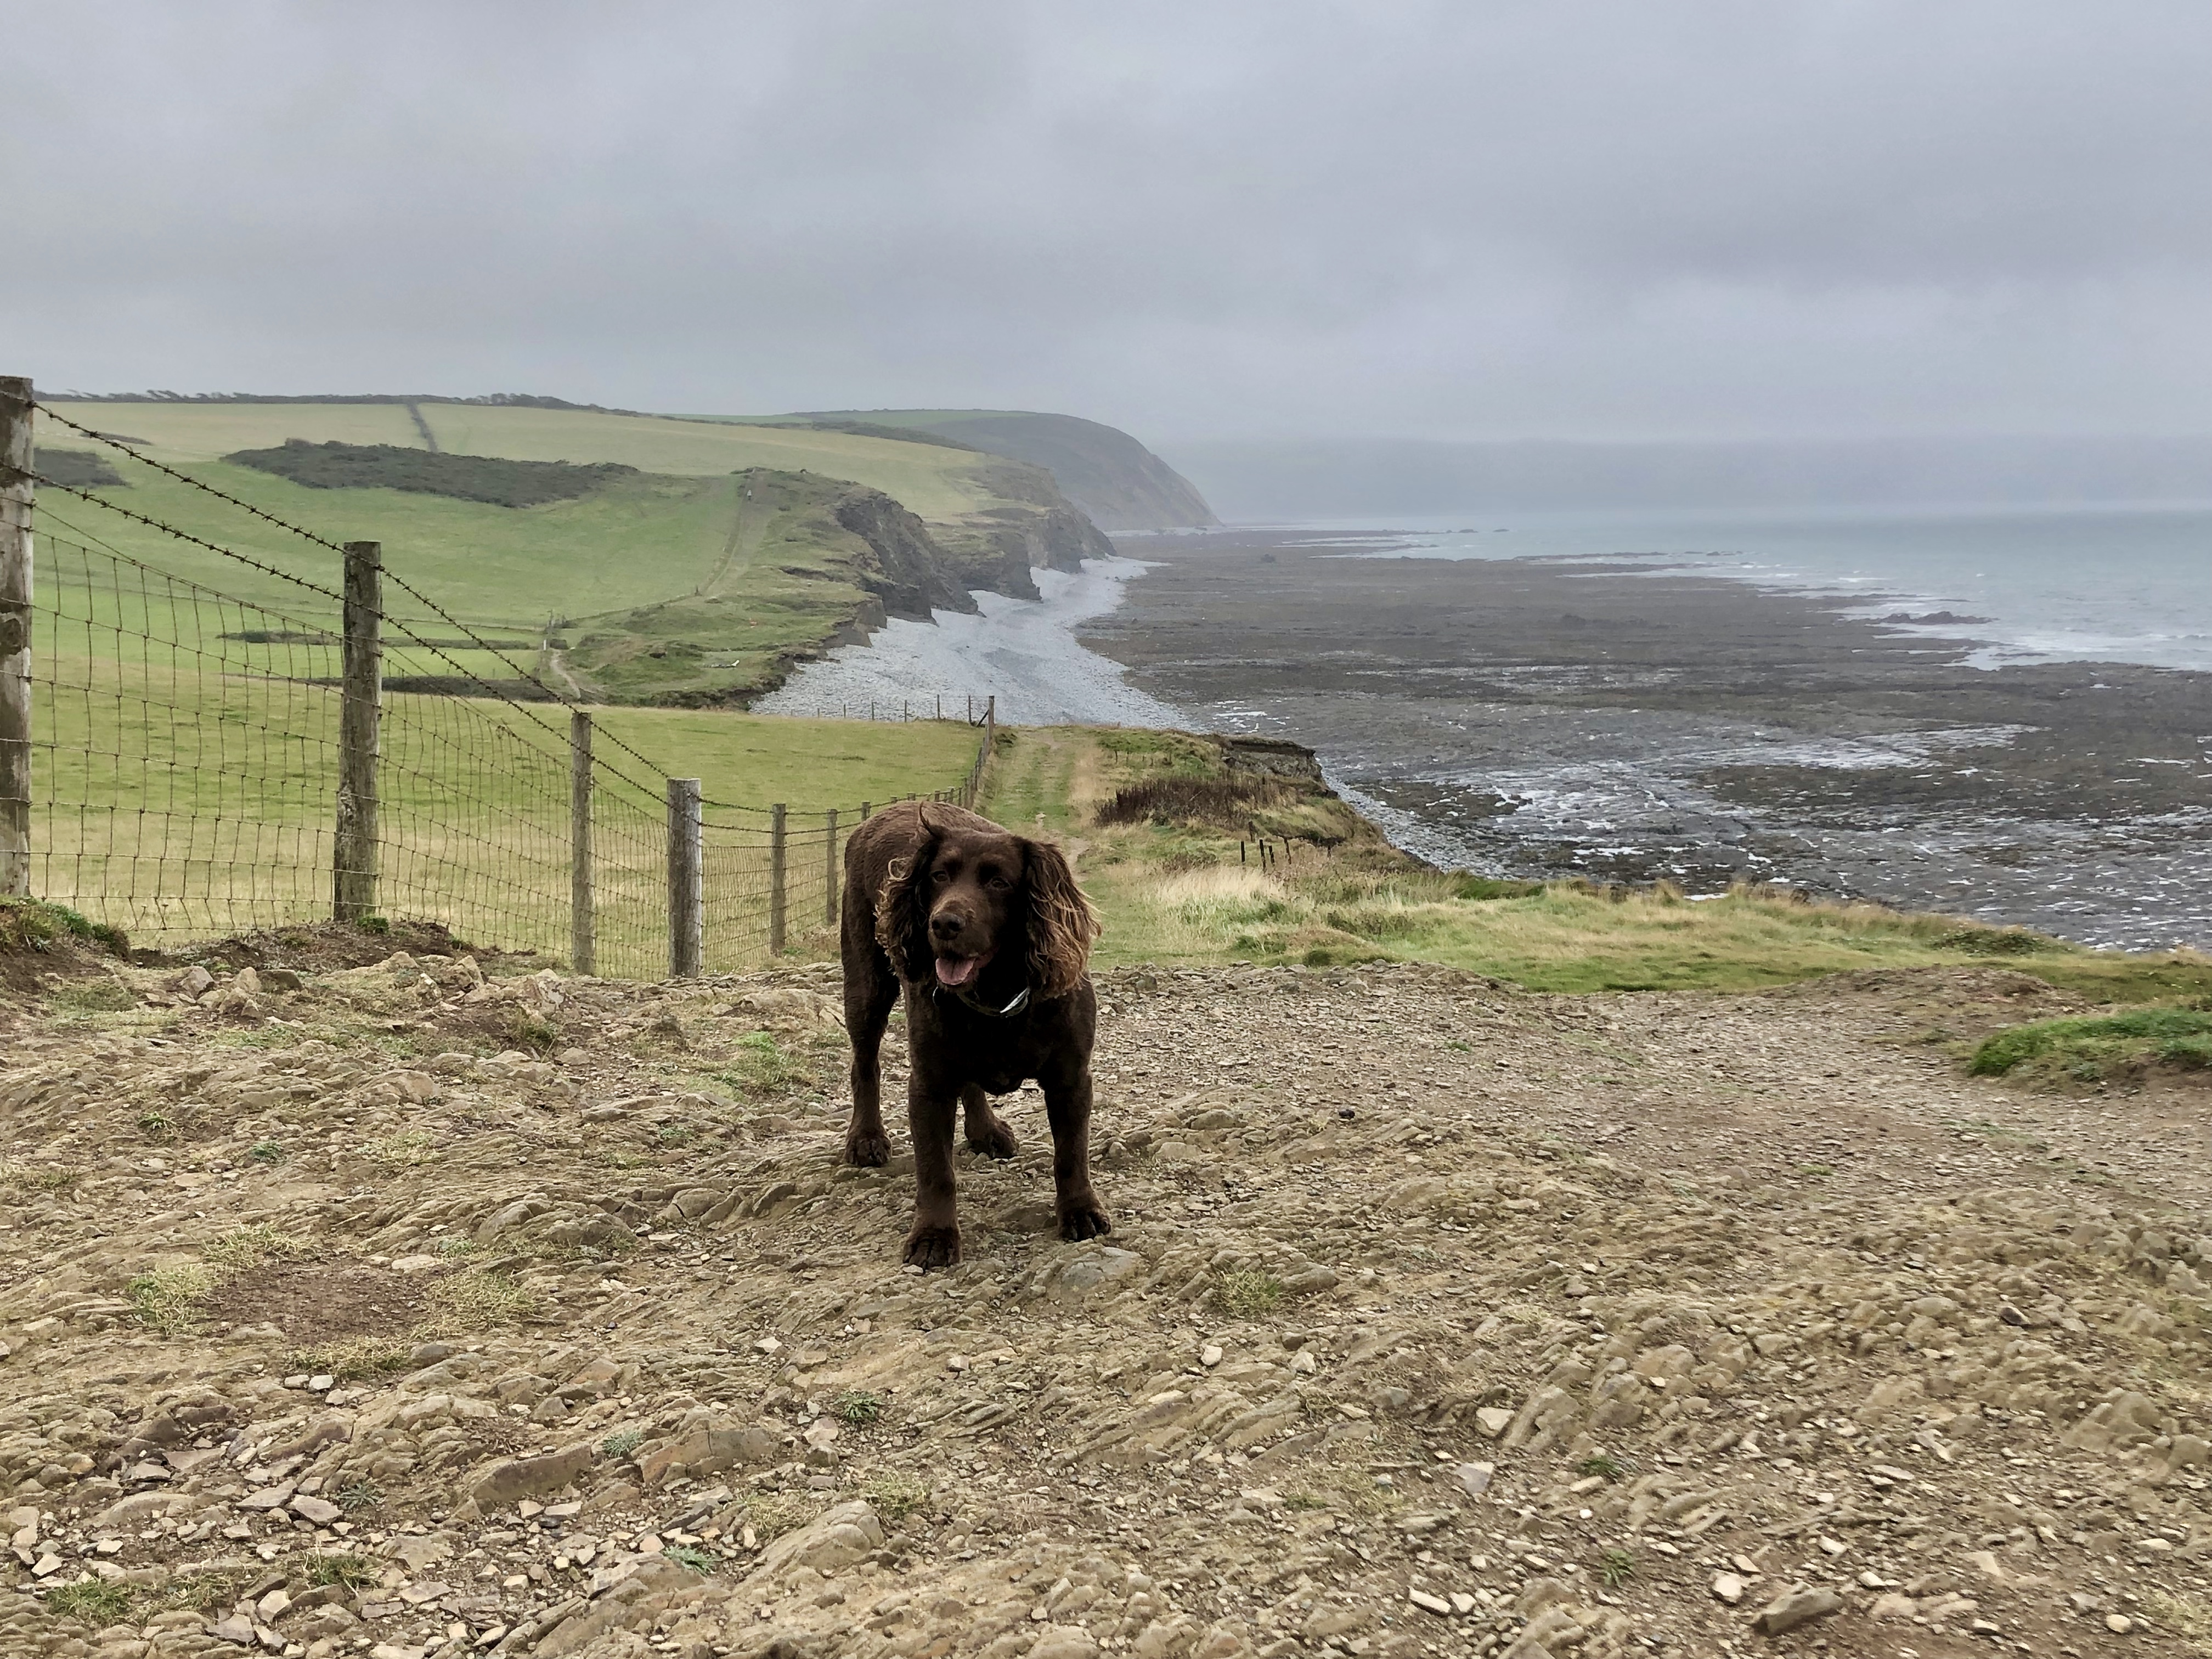 Walking the stunning South West Coast Path along the cliff top after leaving Westward Ho!